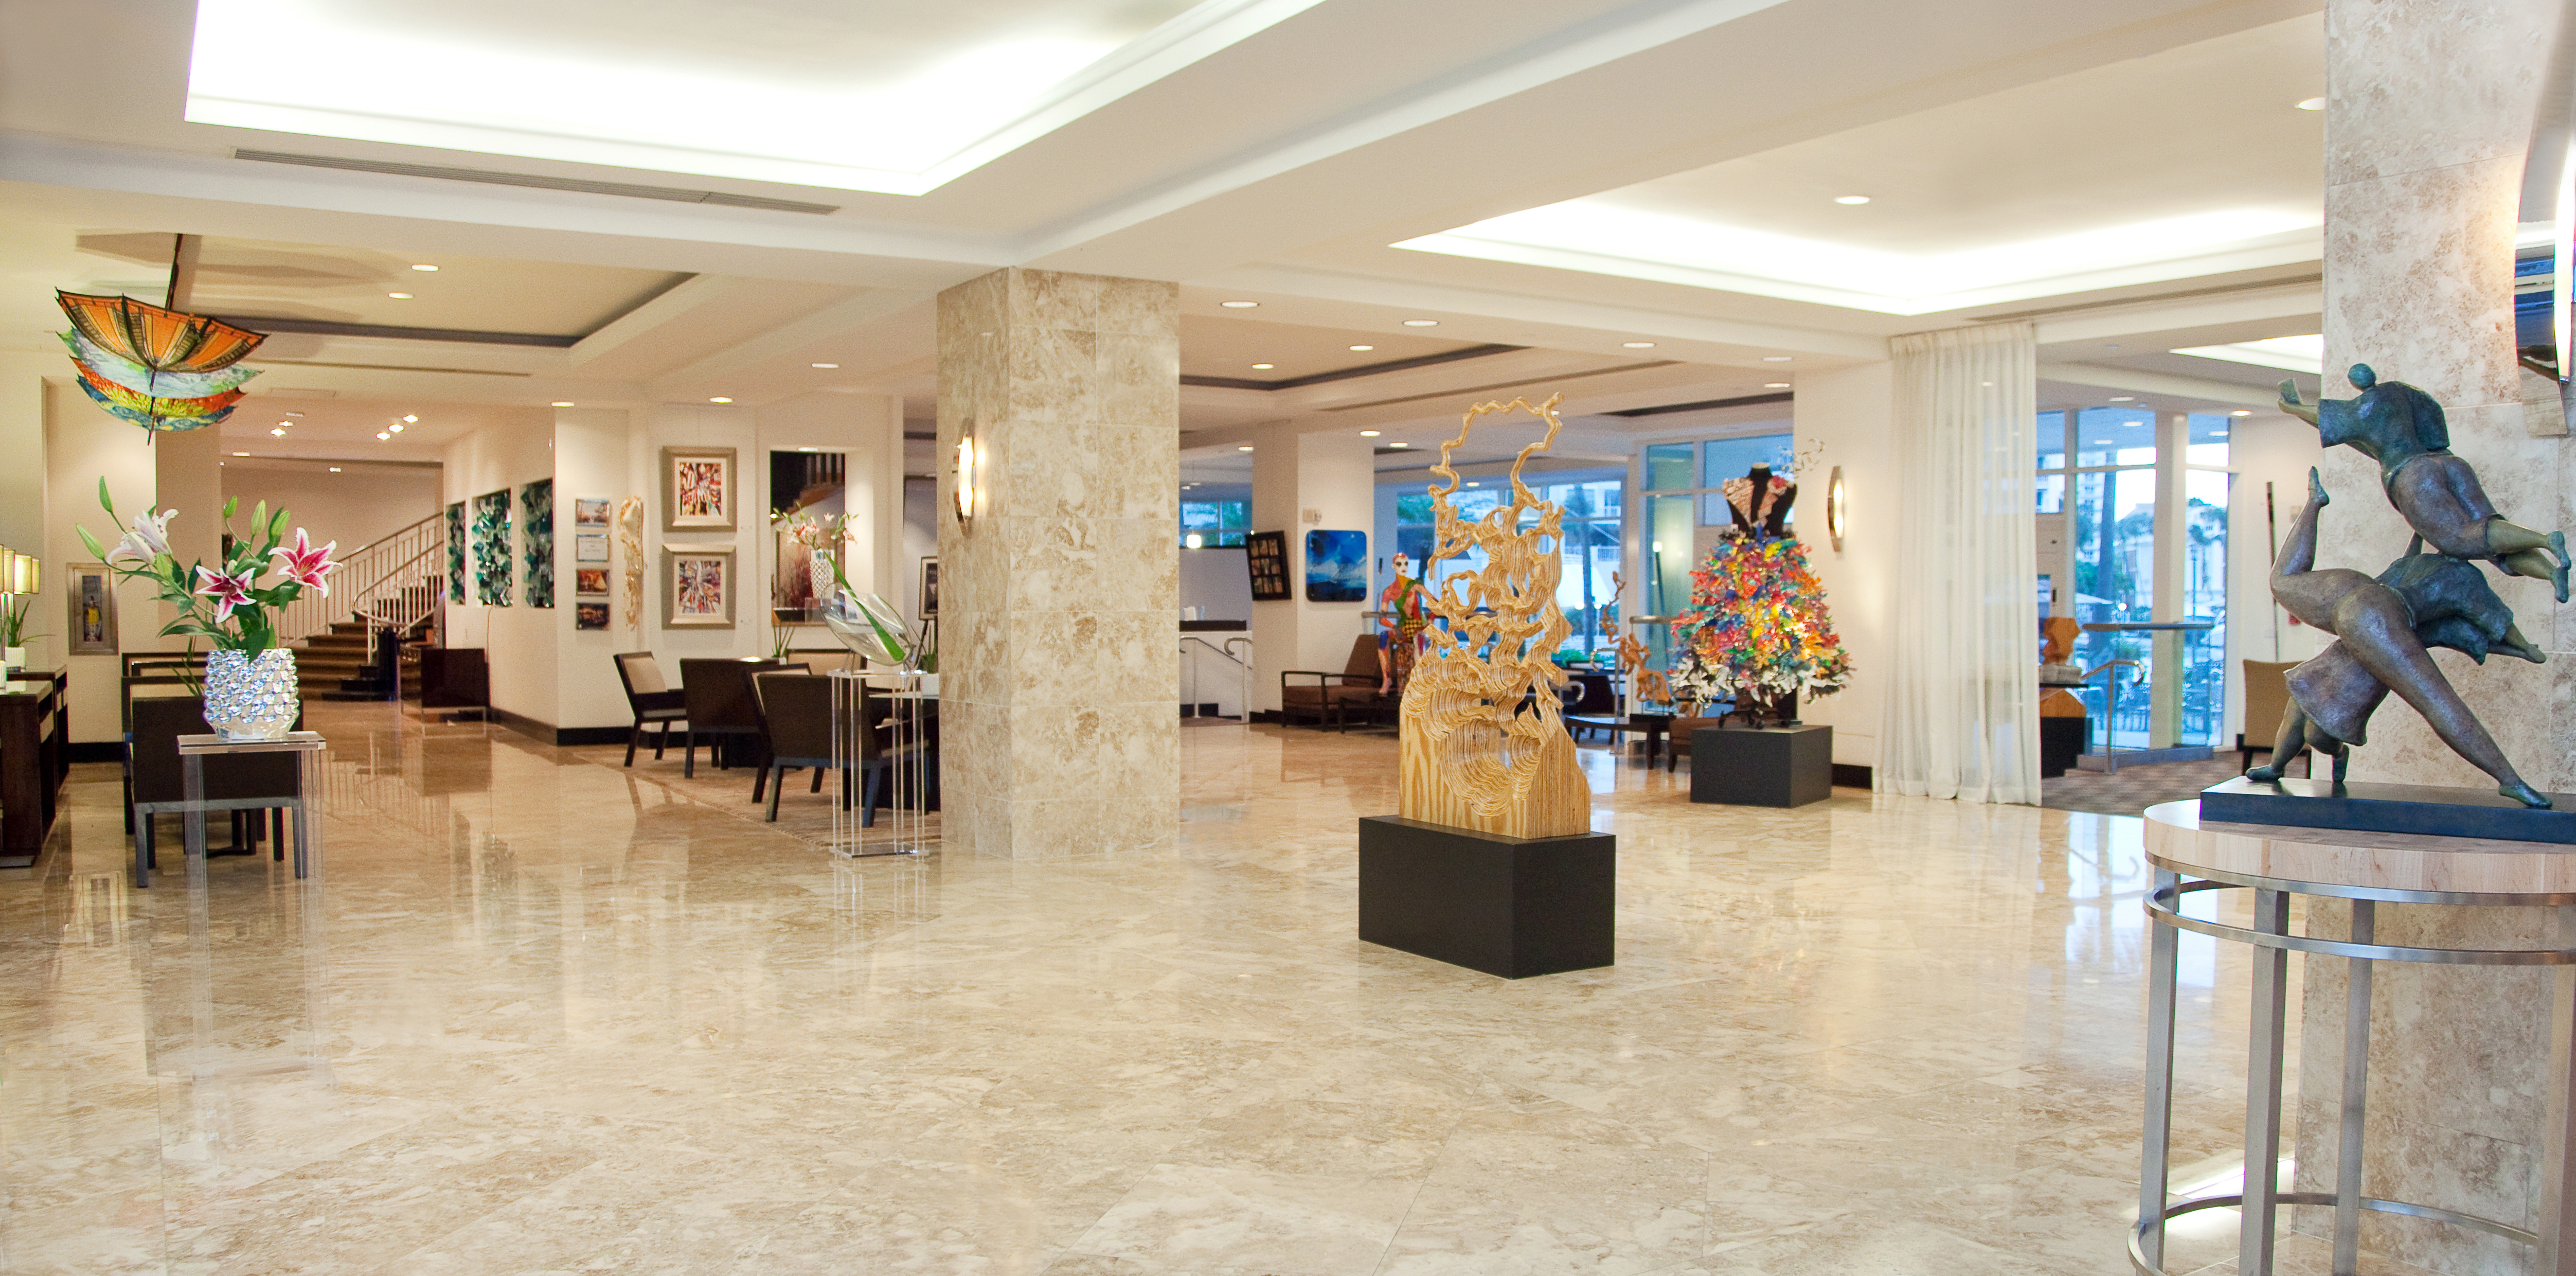 Galleryone A Doubletree Suites By Hilton Hotel In Fort Lauderdale Fl Whitepages